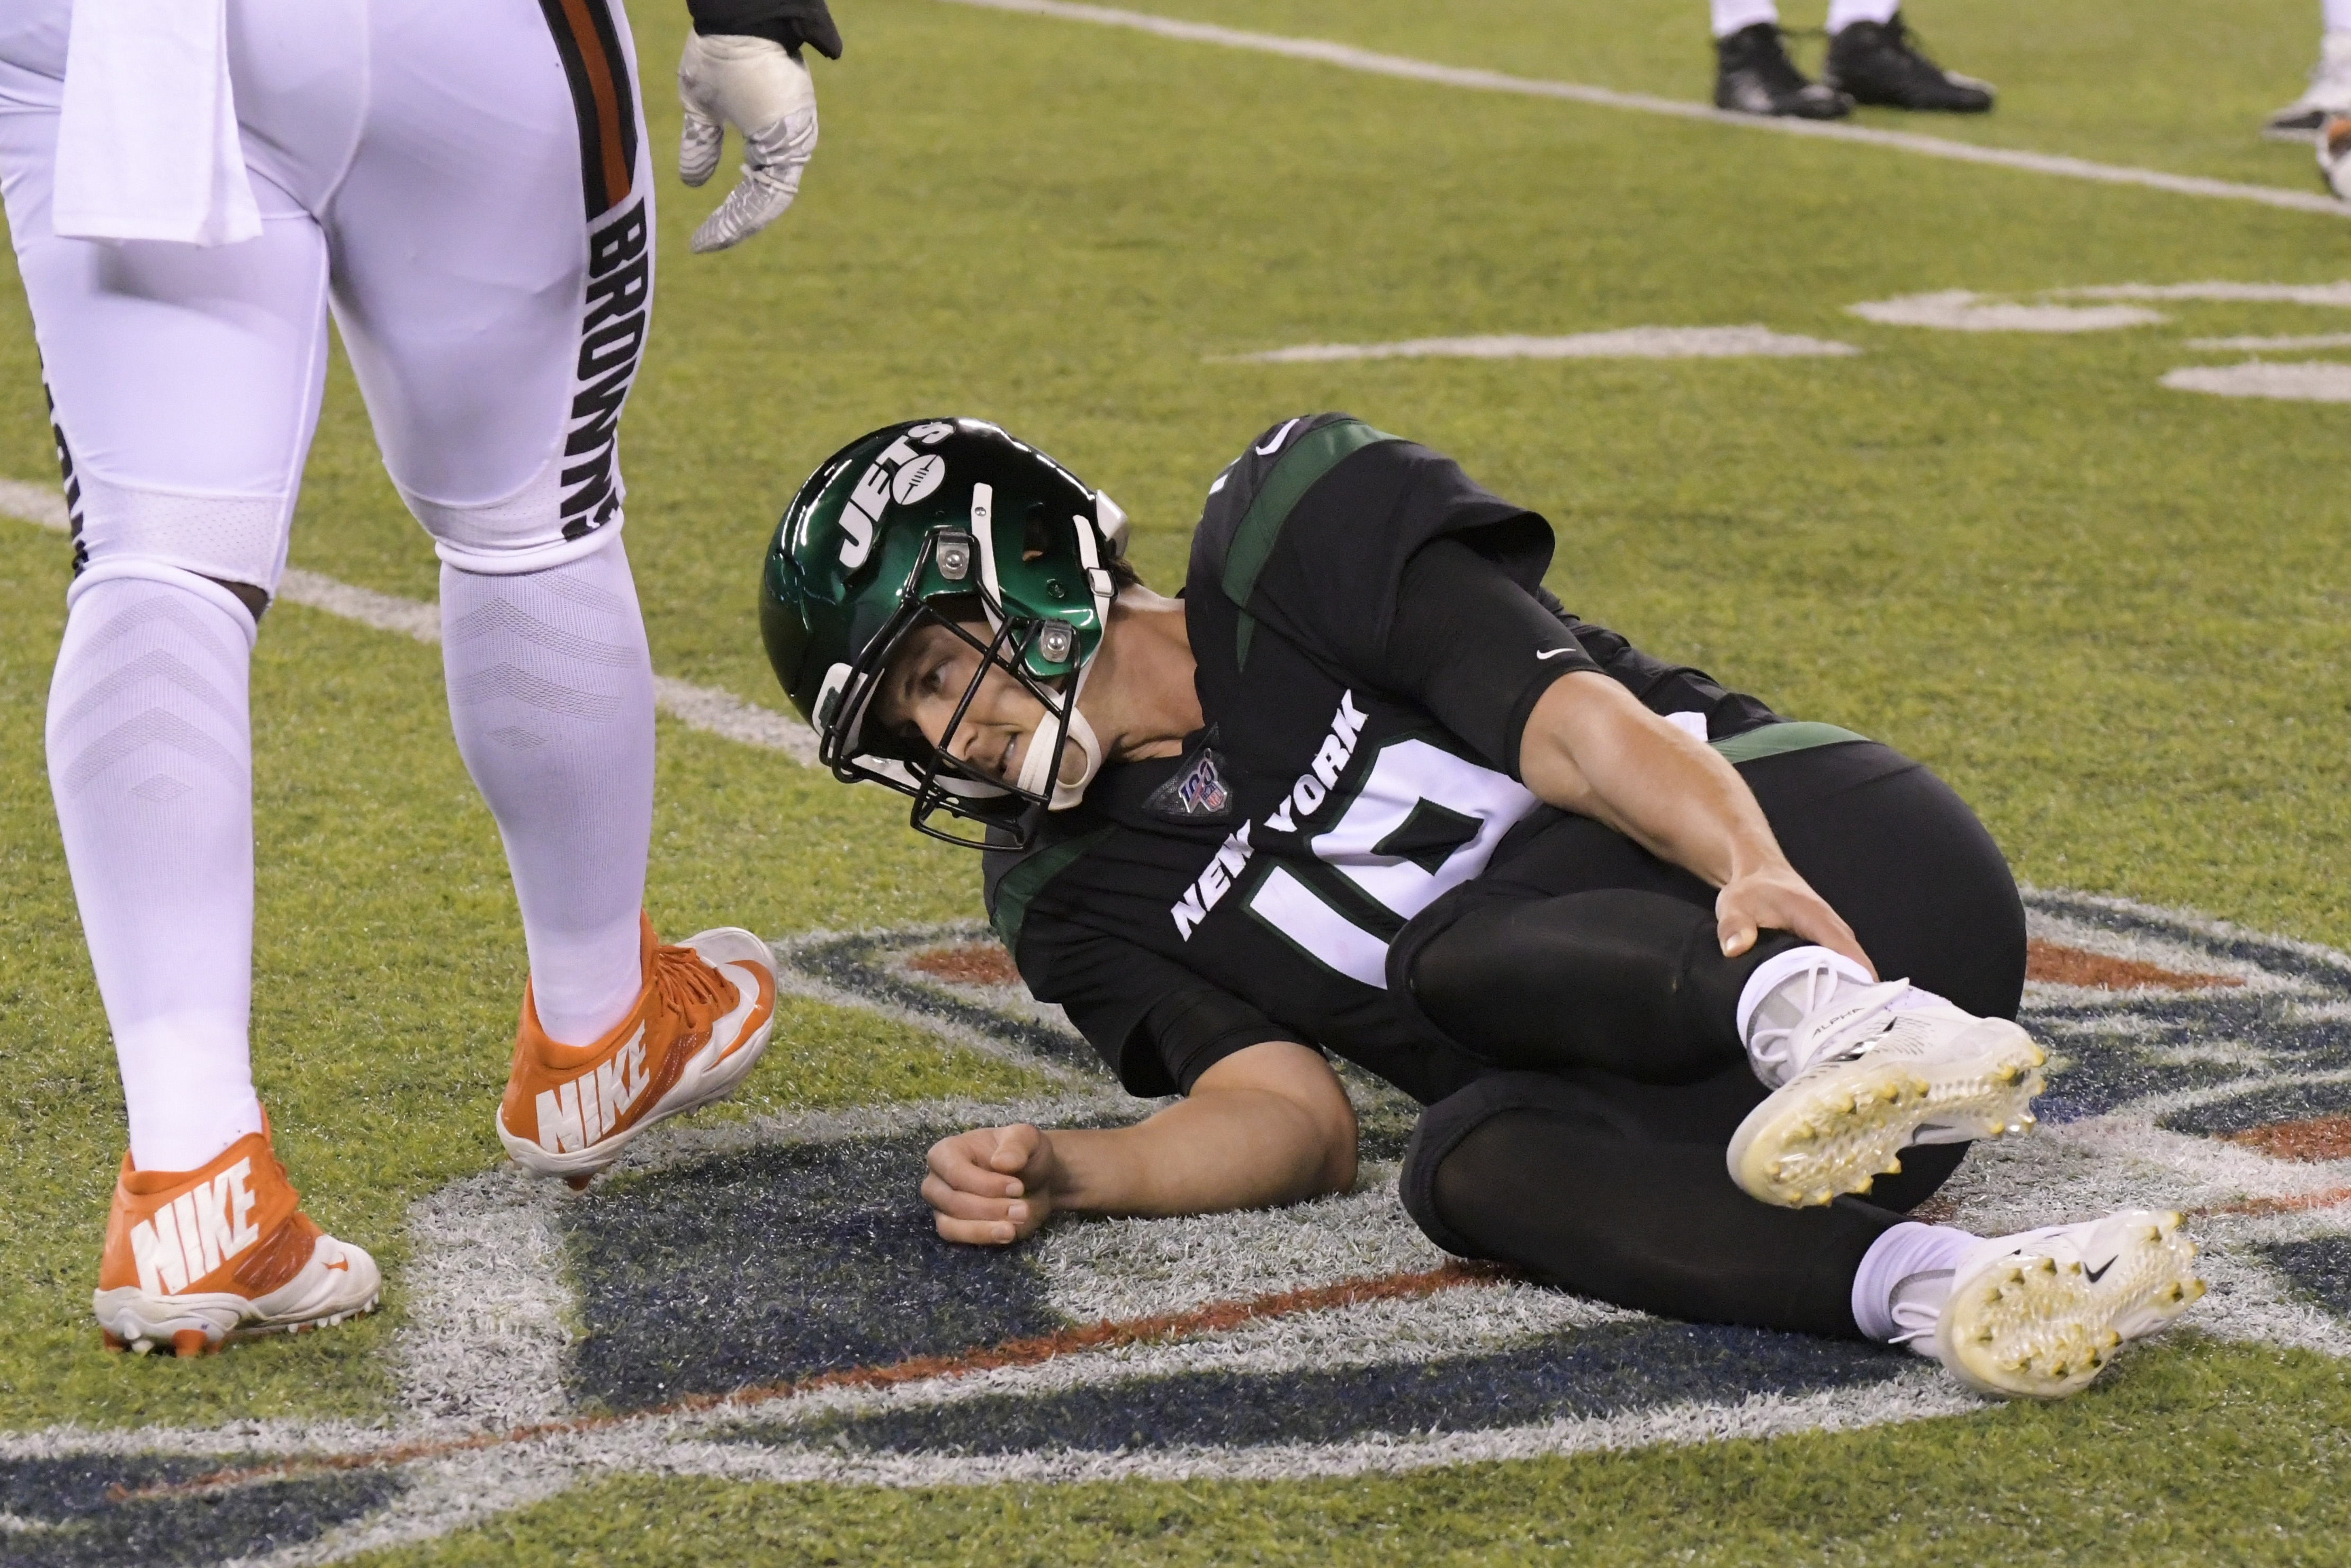 Jets' Siemian out for year with ankle injury, Falk to start